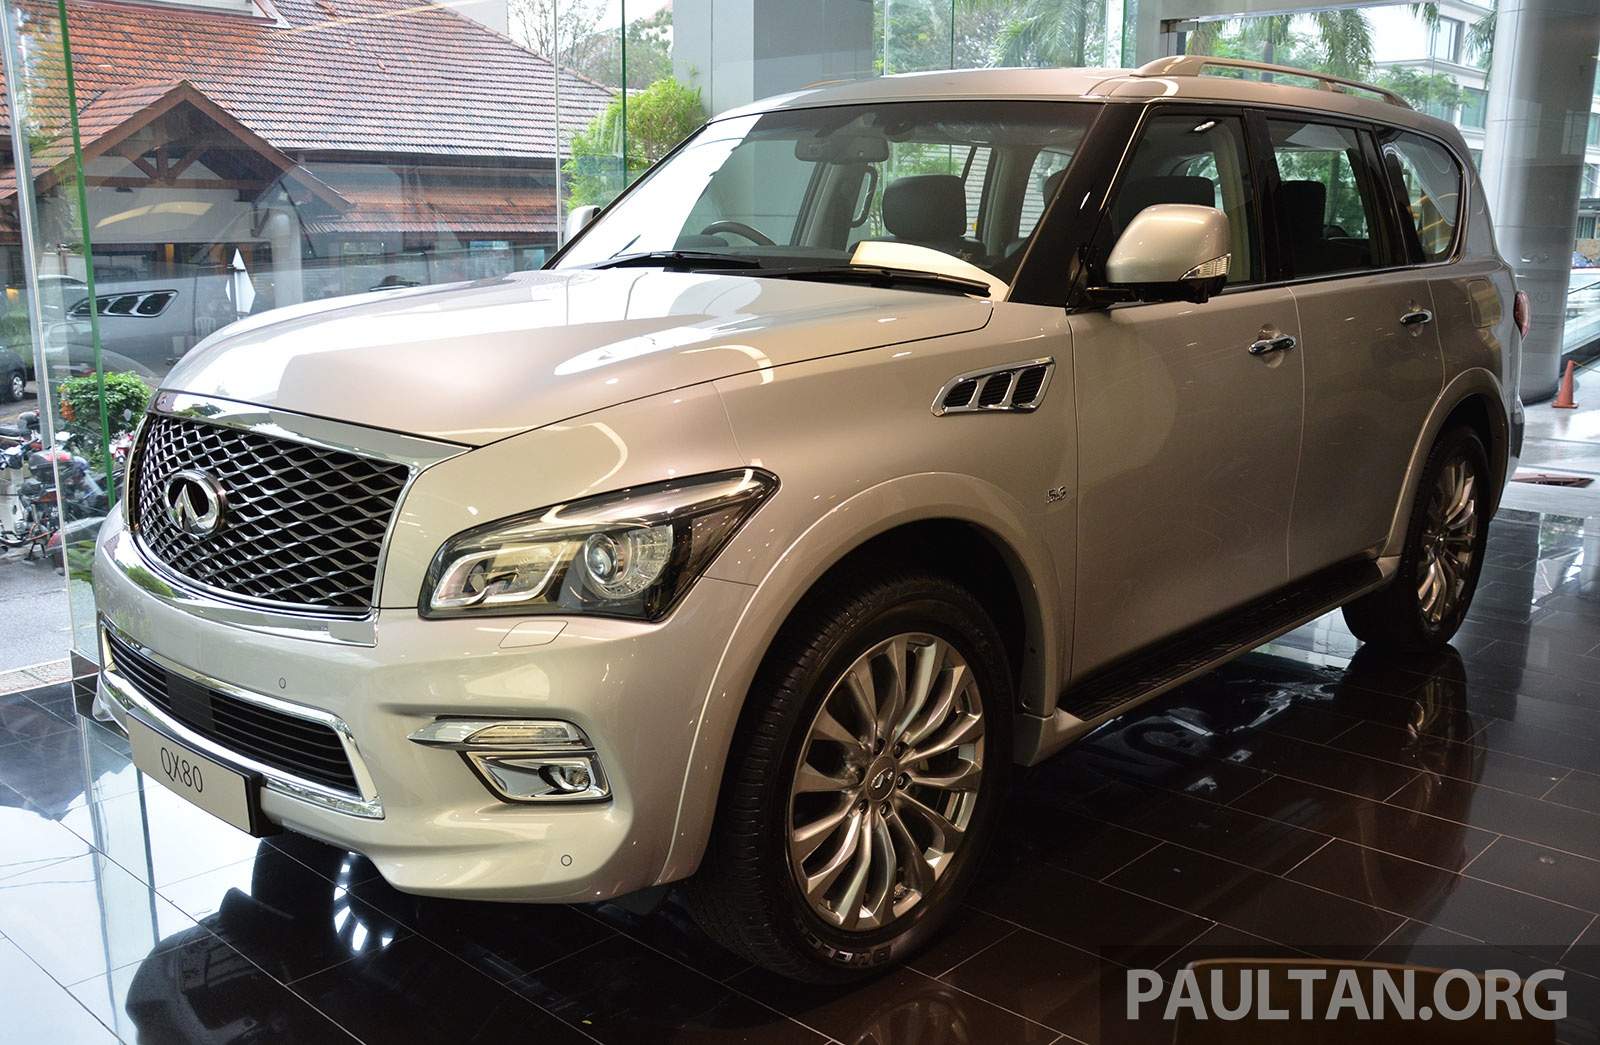 Qx80 For Sale >> Infiniti QX80 now in Malaysia, 5.6 V8 SUV on sale 2015 Image 291607